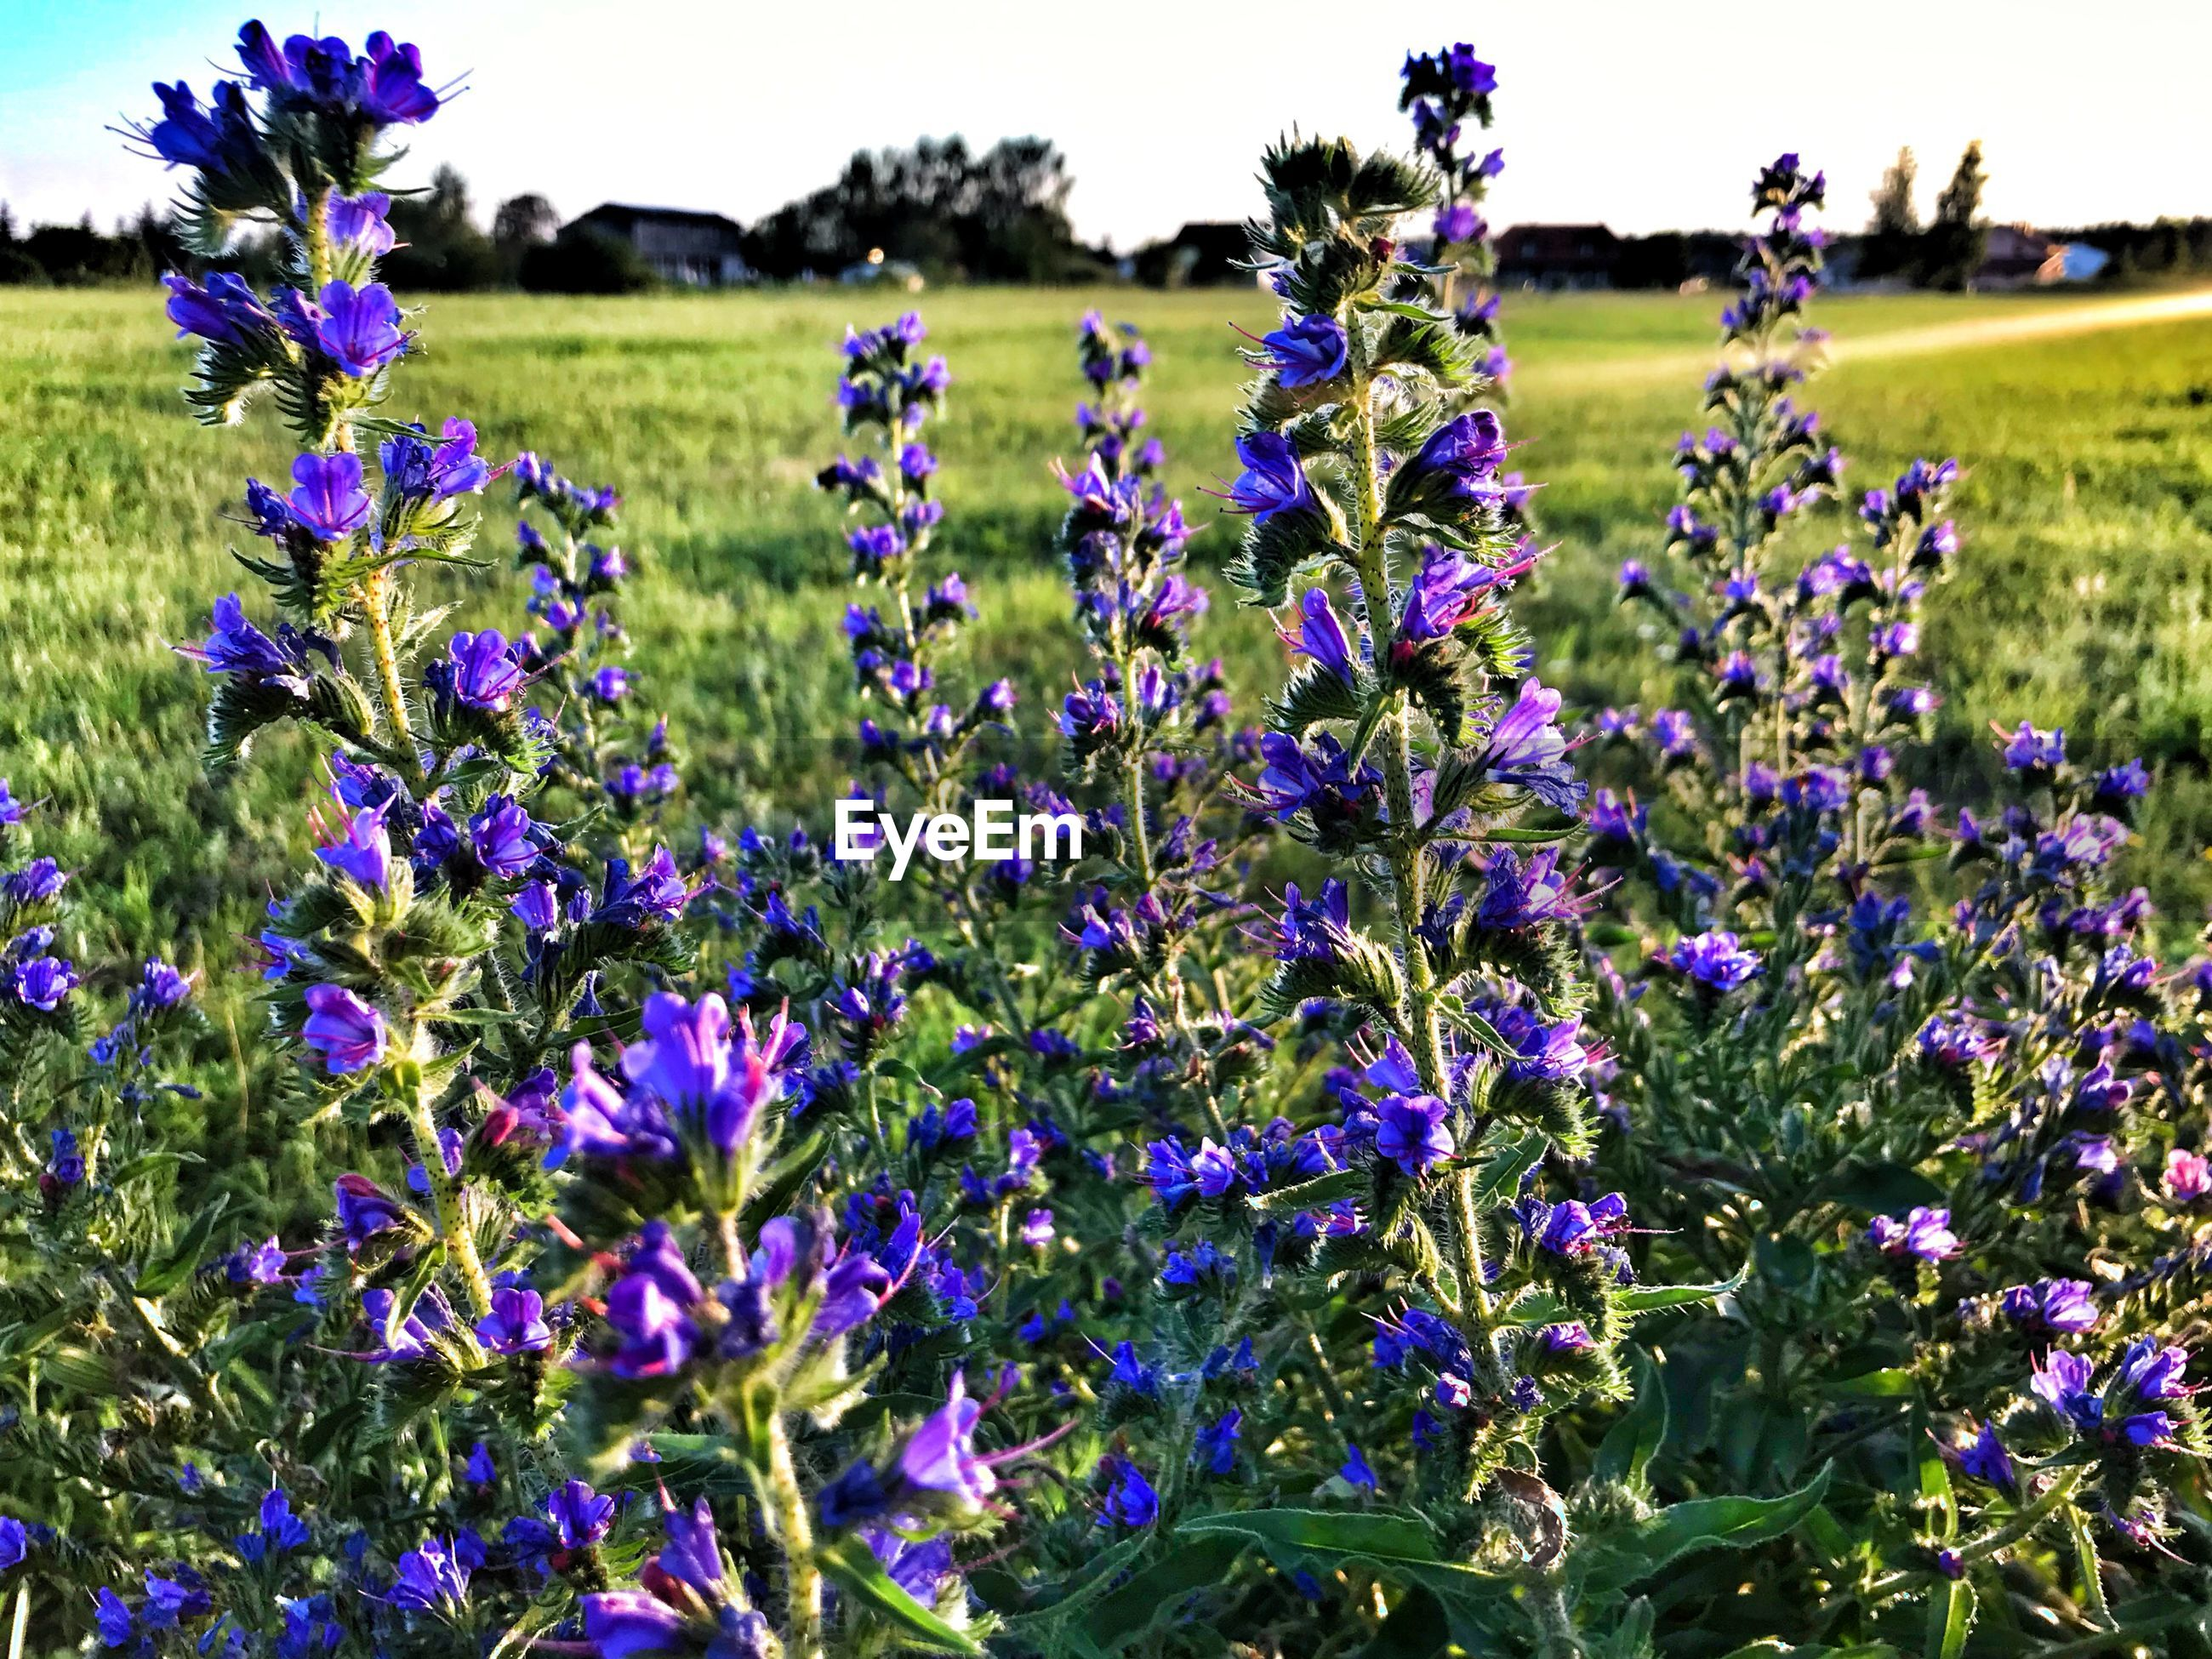 CLOSE-UP OF FRESH PURPLE LAVENDER FLOWERS IN FIELD